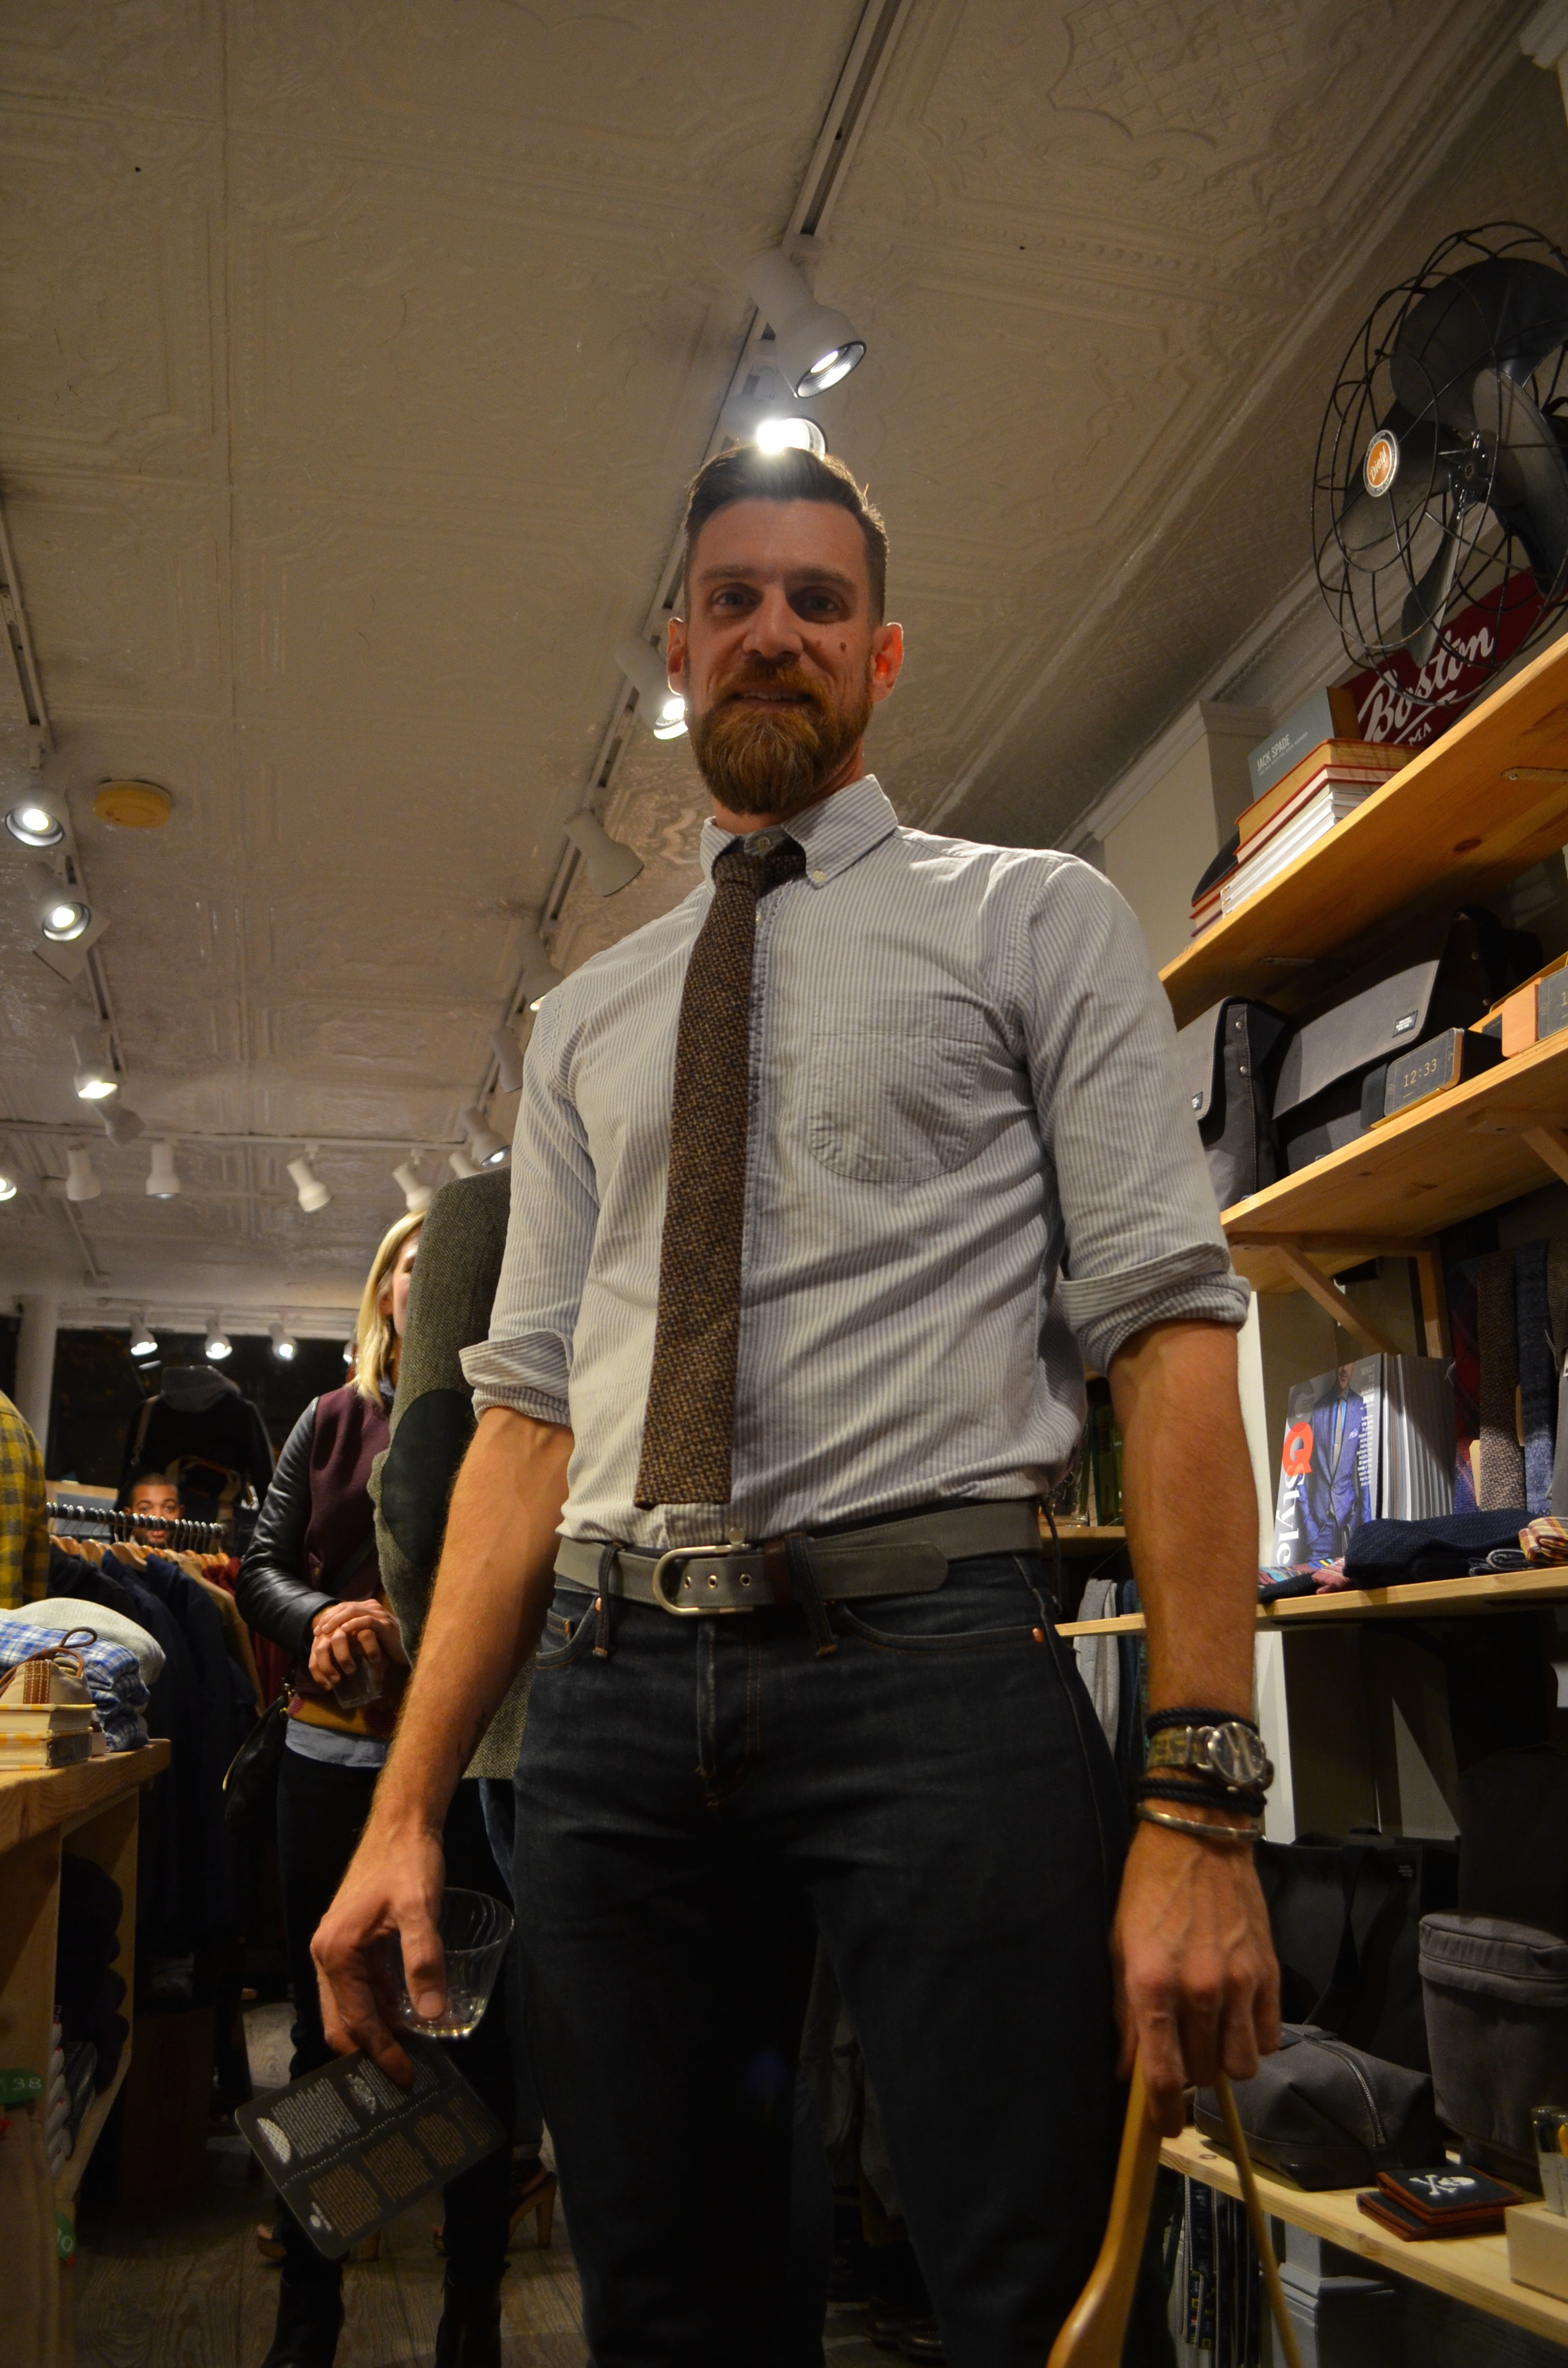 Thursday, Oct. 9 at Sault New England x GQ How To Series | Philip Saul, the founder & the owner of  Sault New England  (Menswear Retail Shop in Boston)